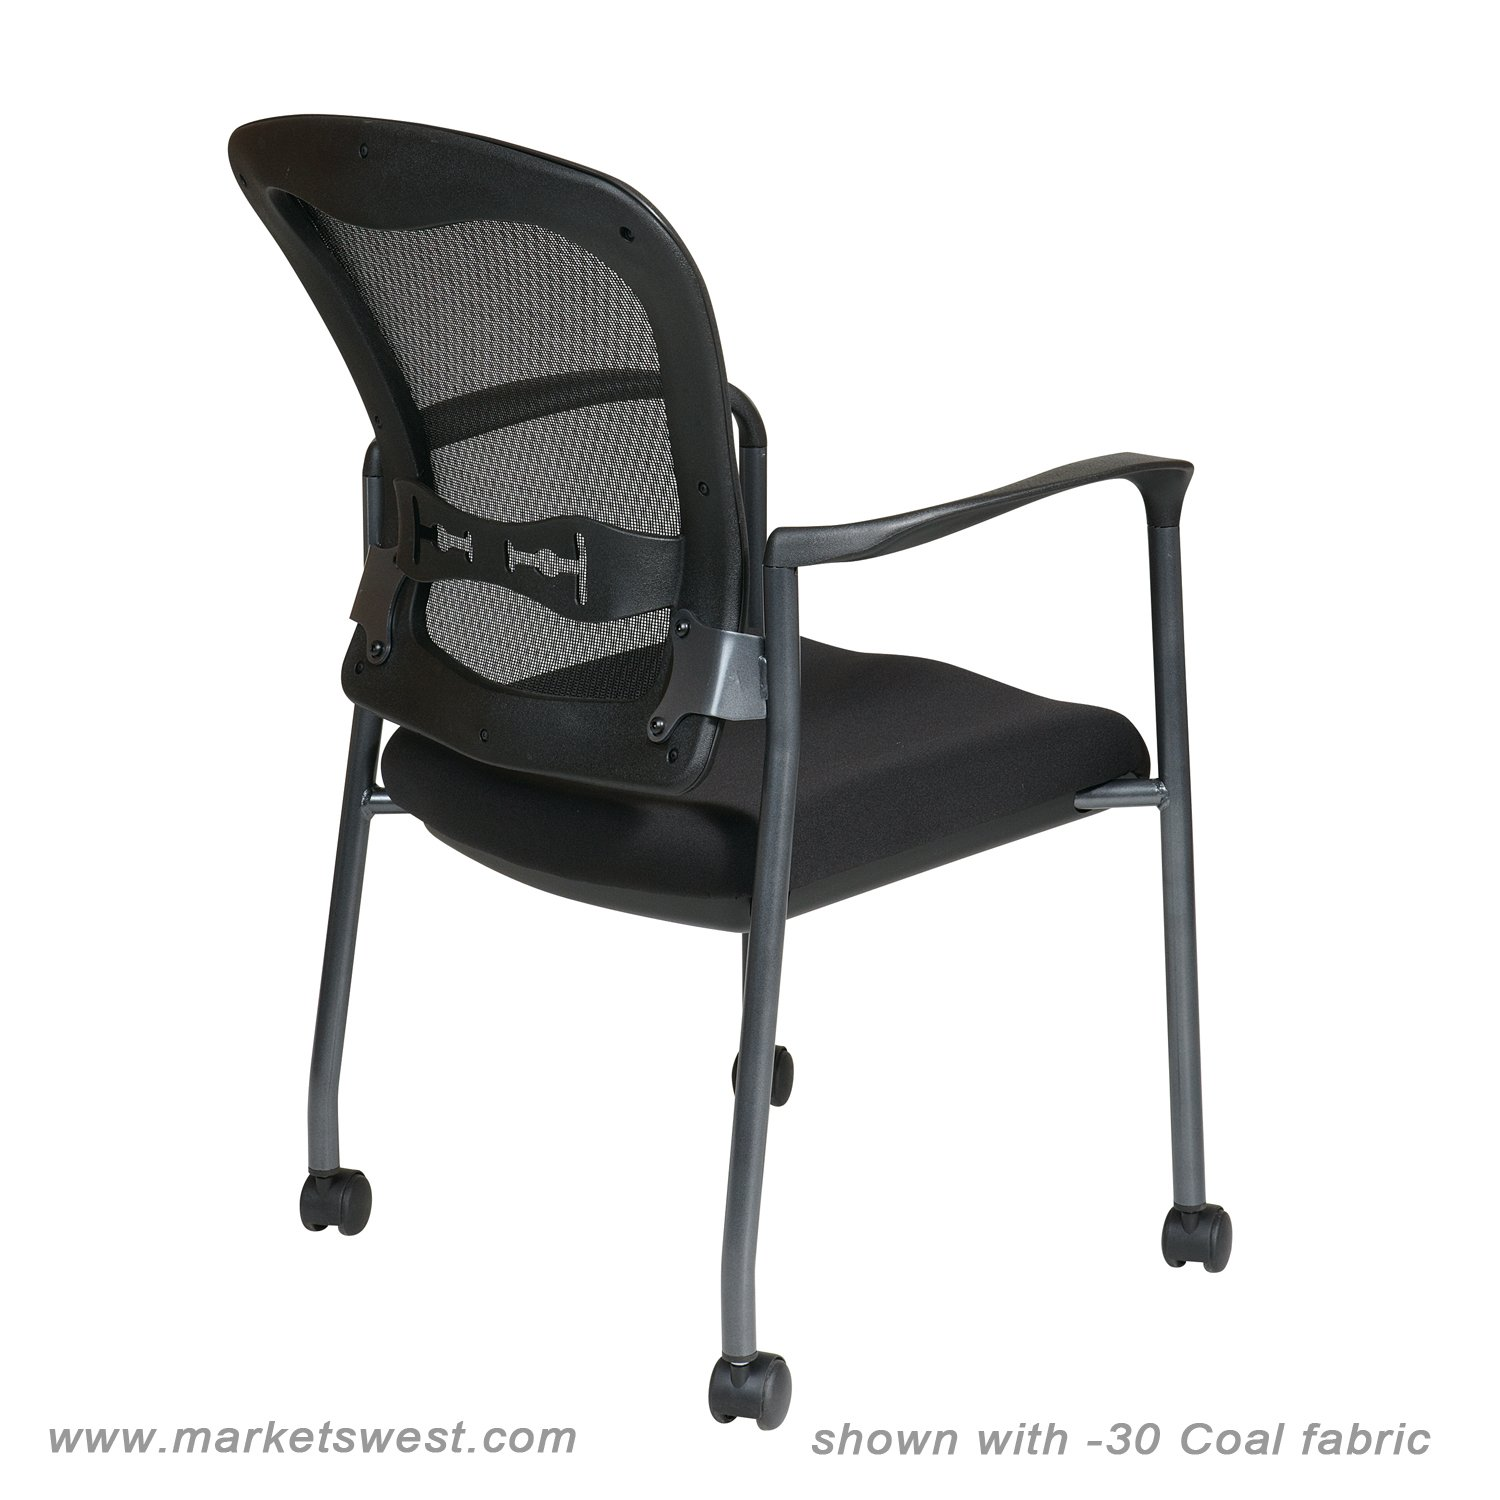 office chair supports 300 lbs race car progrid mesh back visitors with padded fabric seat